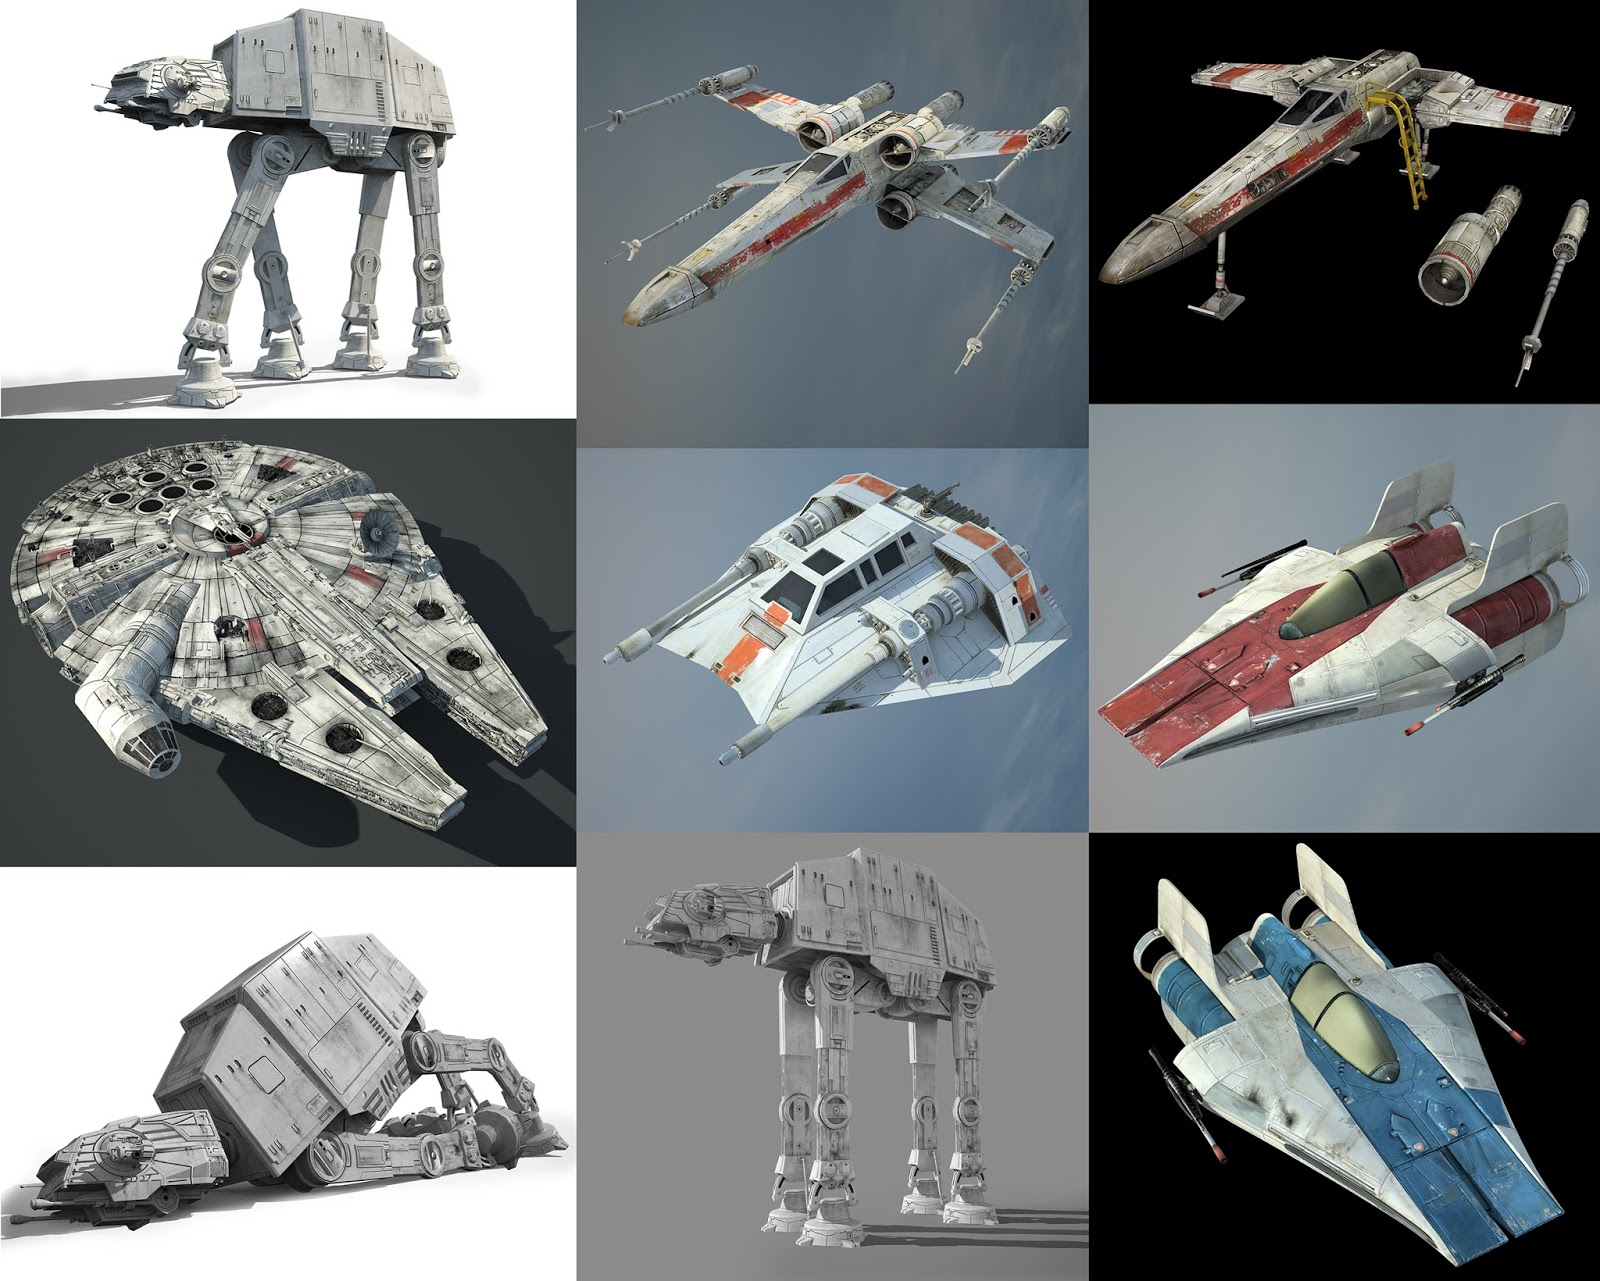 Star Wars Ultimate Vehicles - X-wing, Snowspeeder, A-wing, AT-AT, Millennium Falcon 3D Models